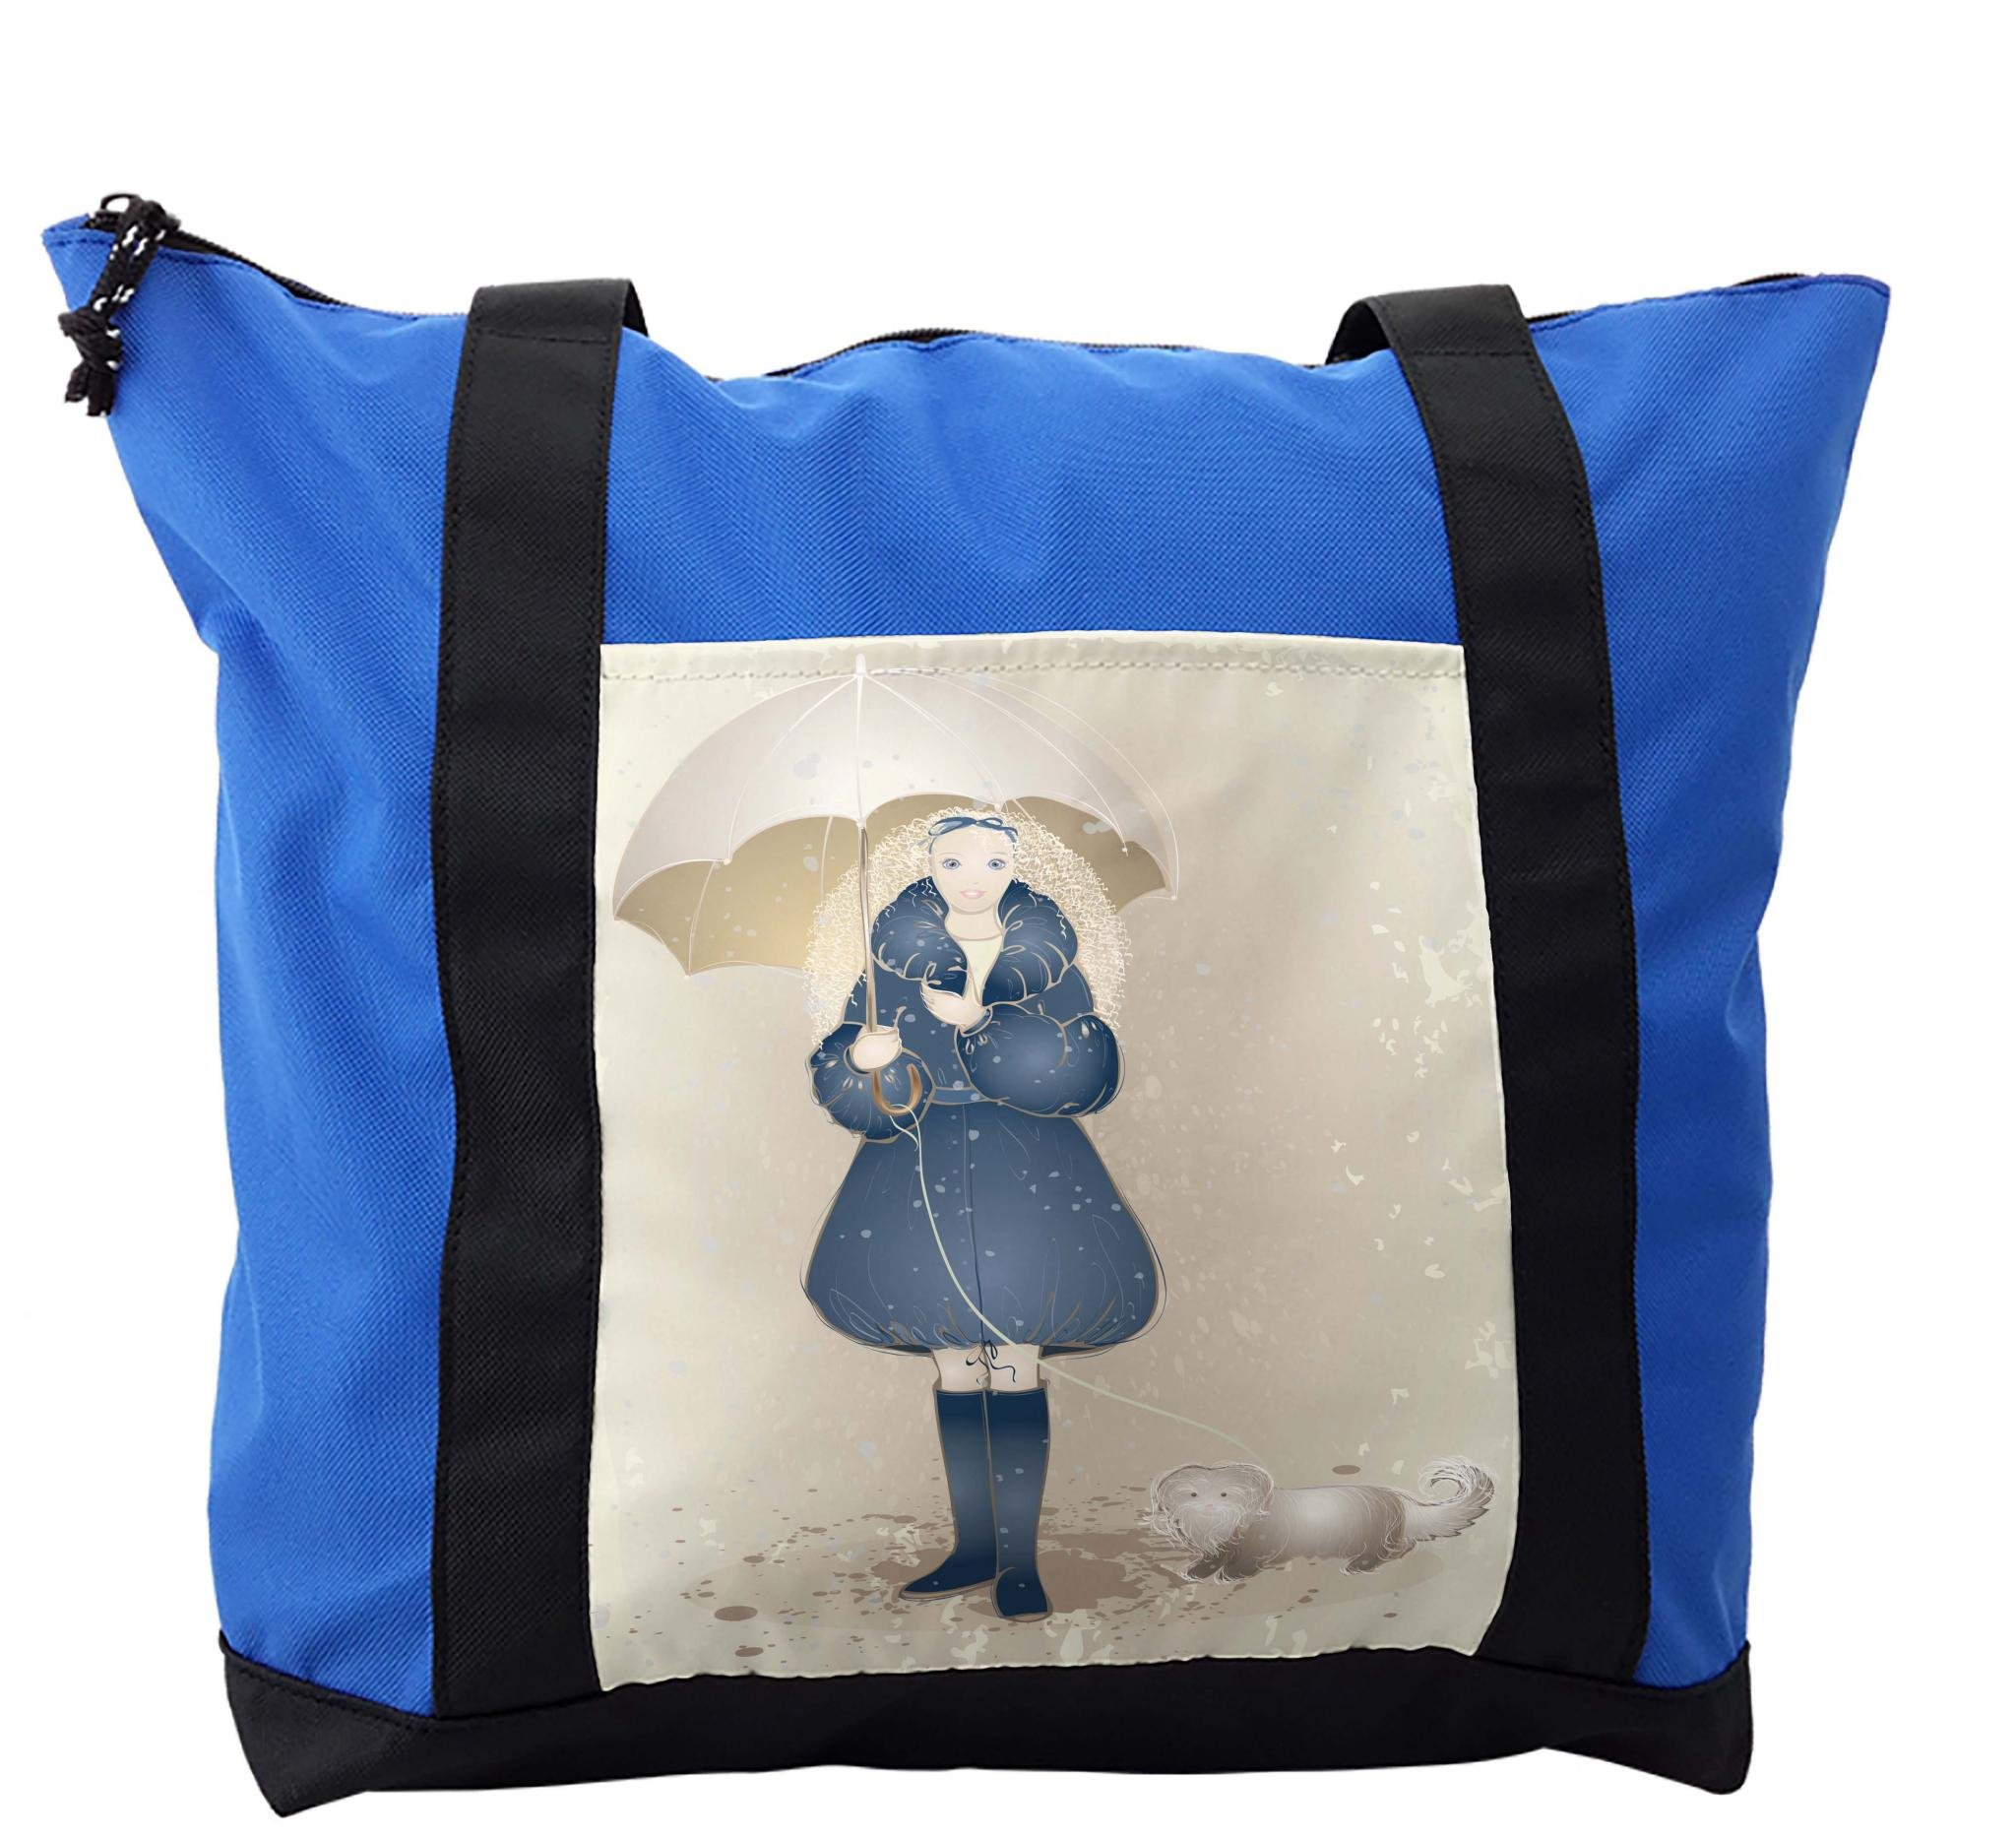 Lunarable Umbrella Shoulder Bag, Curly Haired Girl in Coat, Durable with Zipper